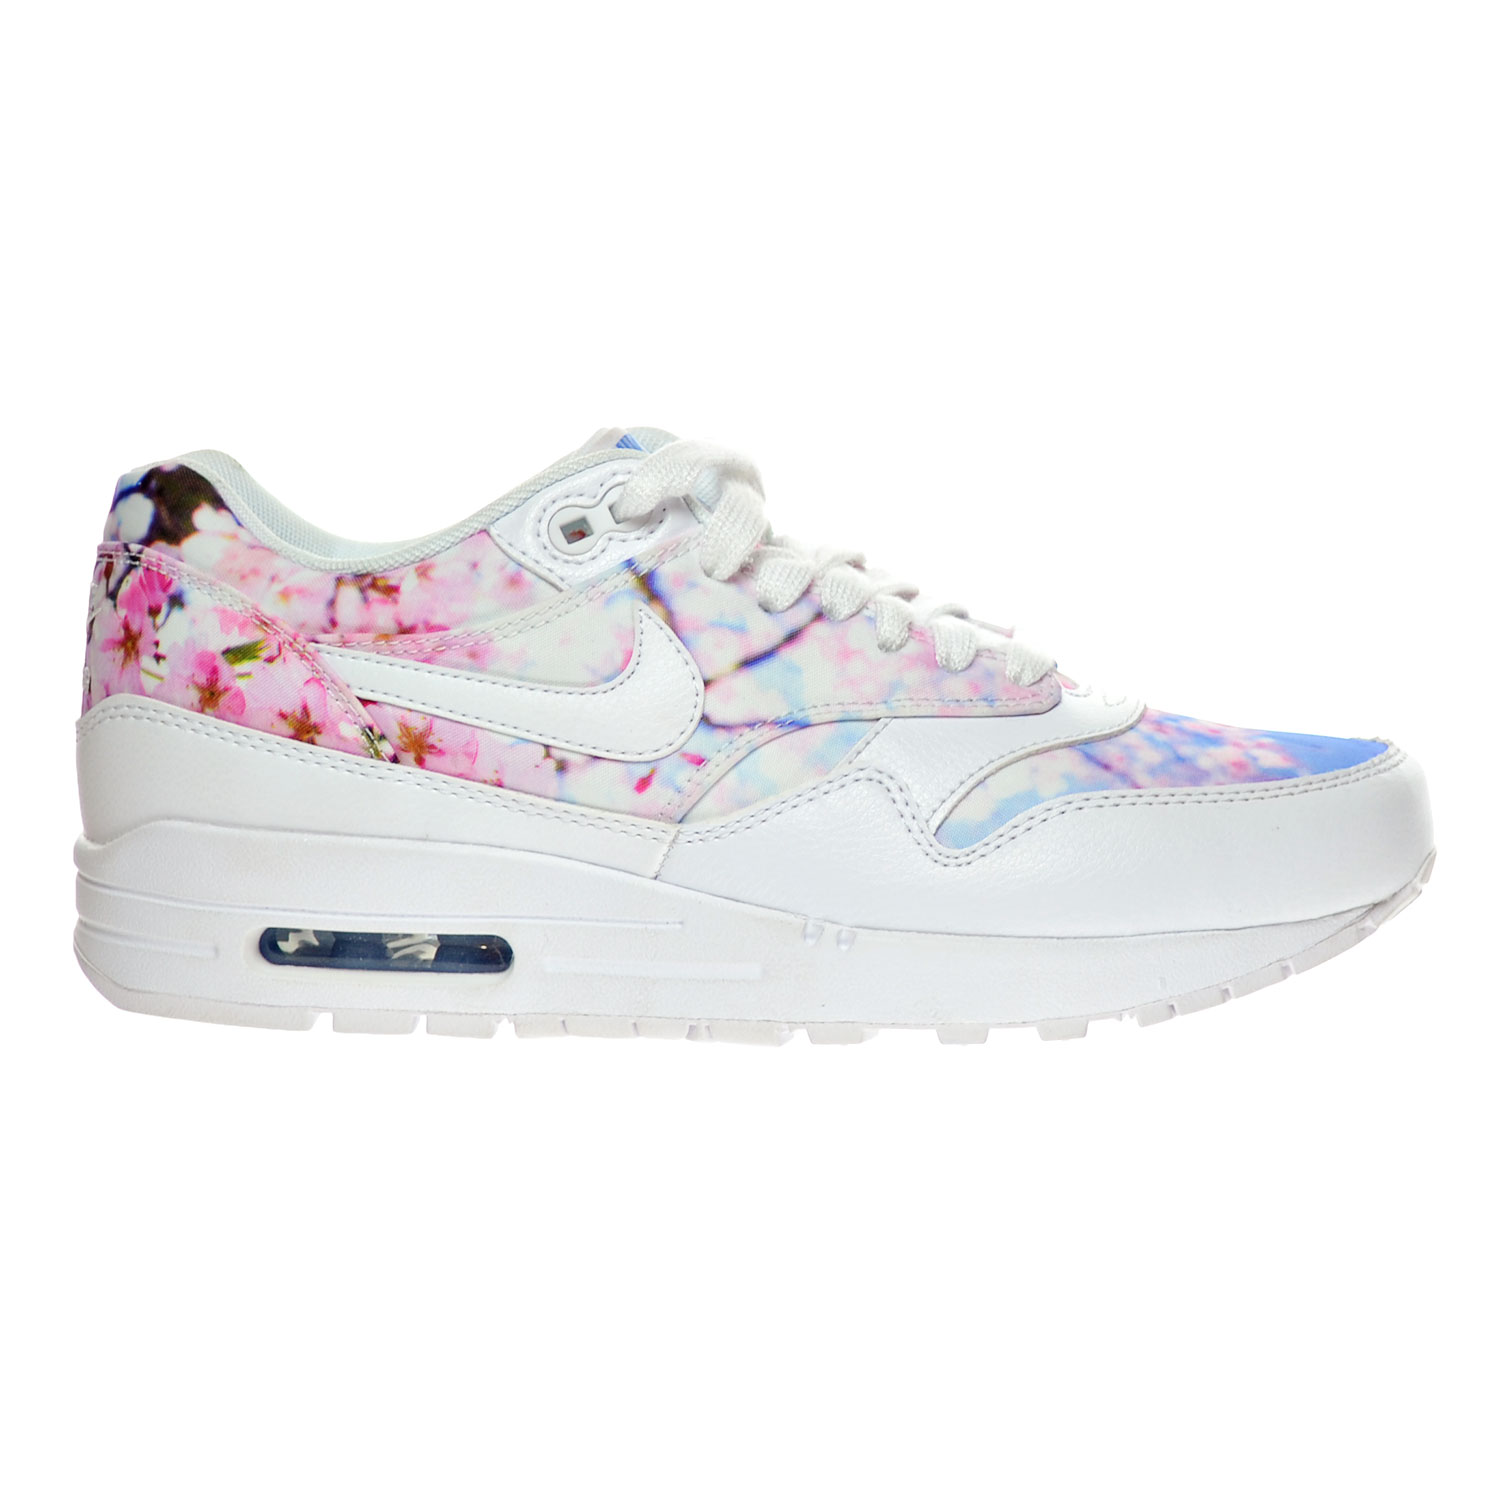 Nike Air Max 1 Cherry Blossom Wit/University Blue/Wit 528898-102